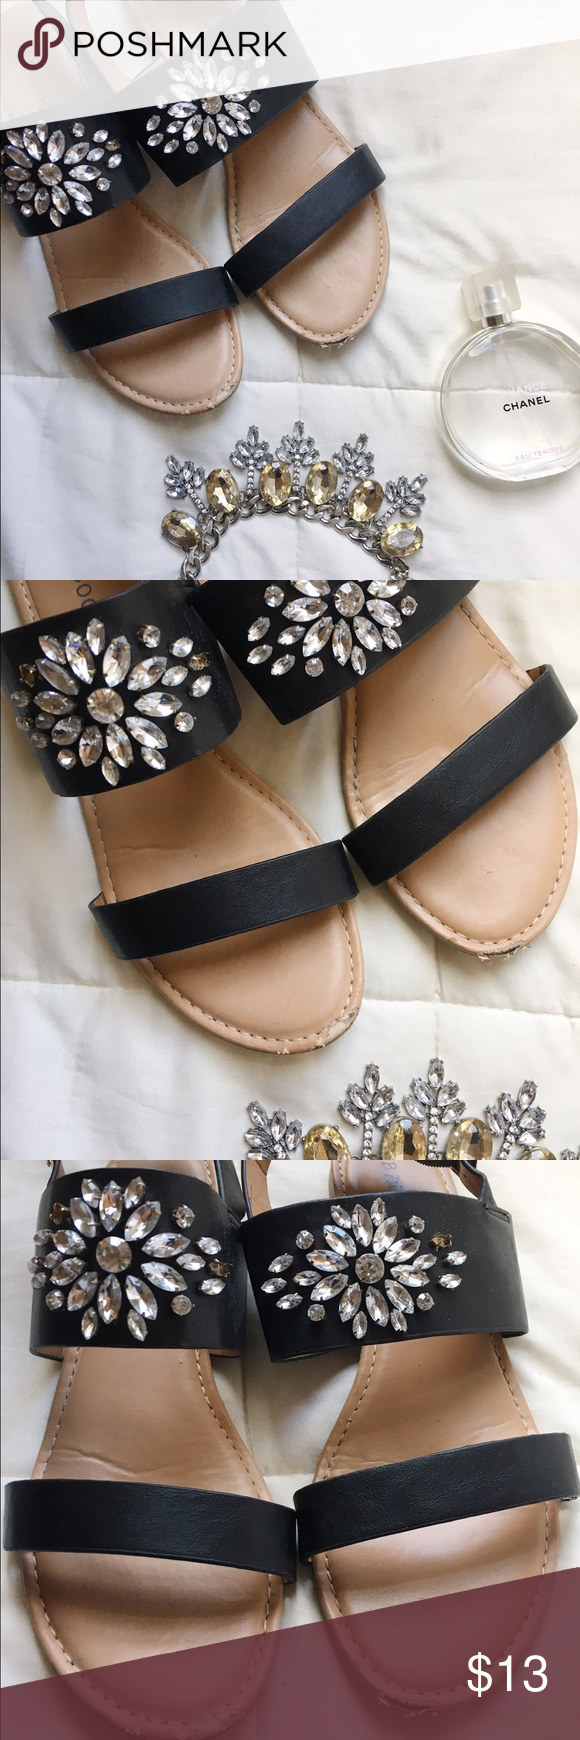 Jeweled Sandals 🎀 All wear is shown in picture, super comfy and perfect touch to any outfit!! Shoes says size 9 but best fits an 8 bamboo Shoes Sandals